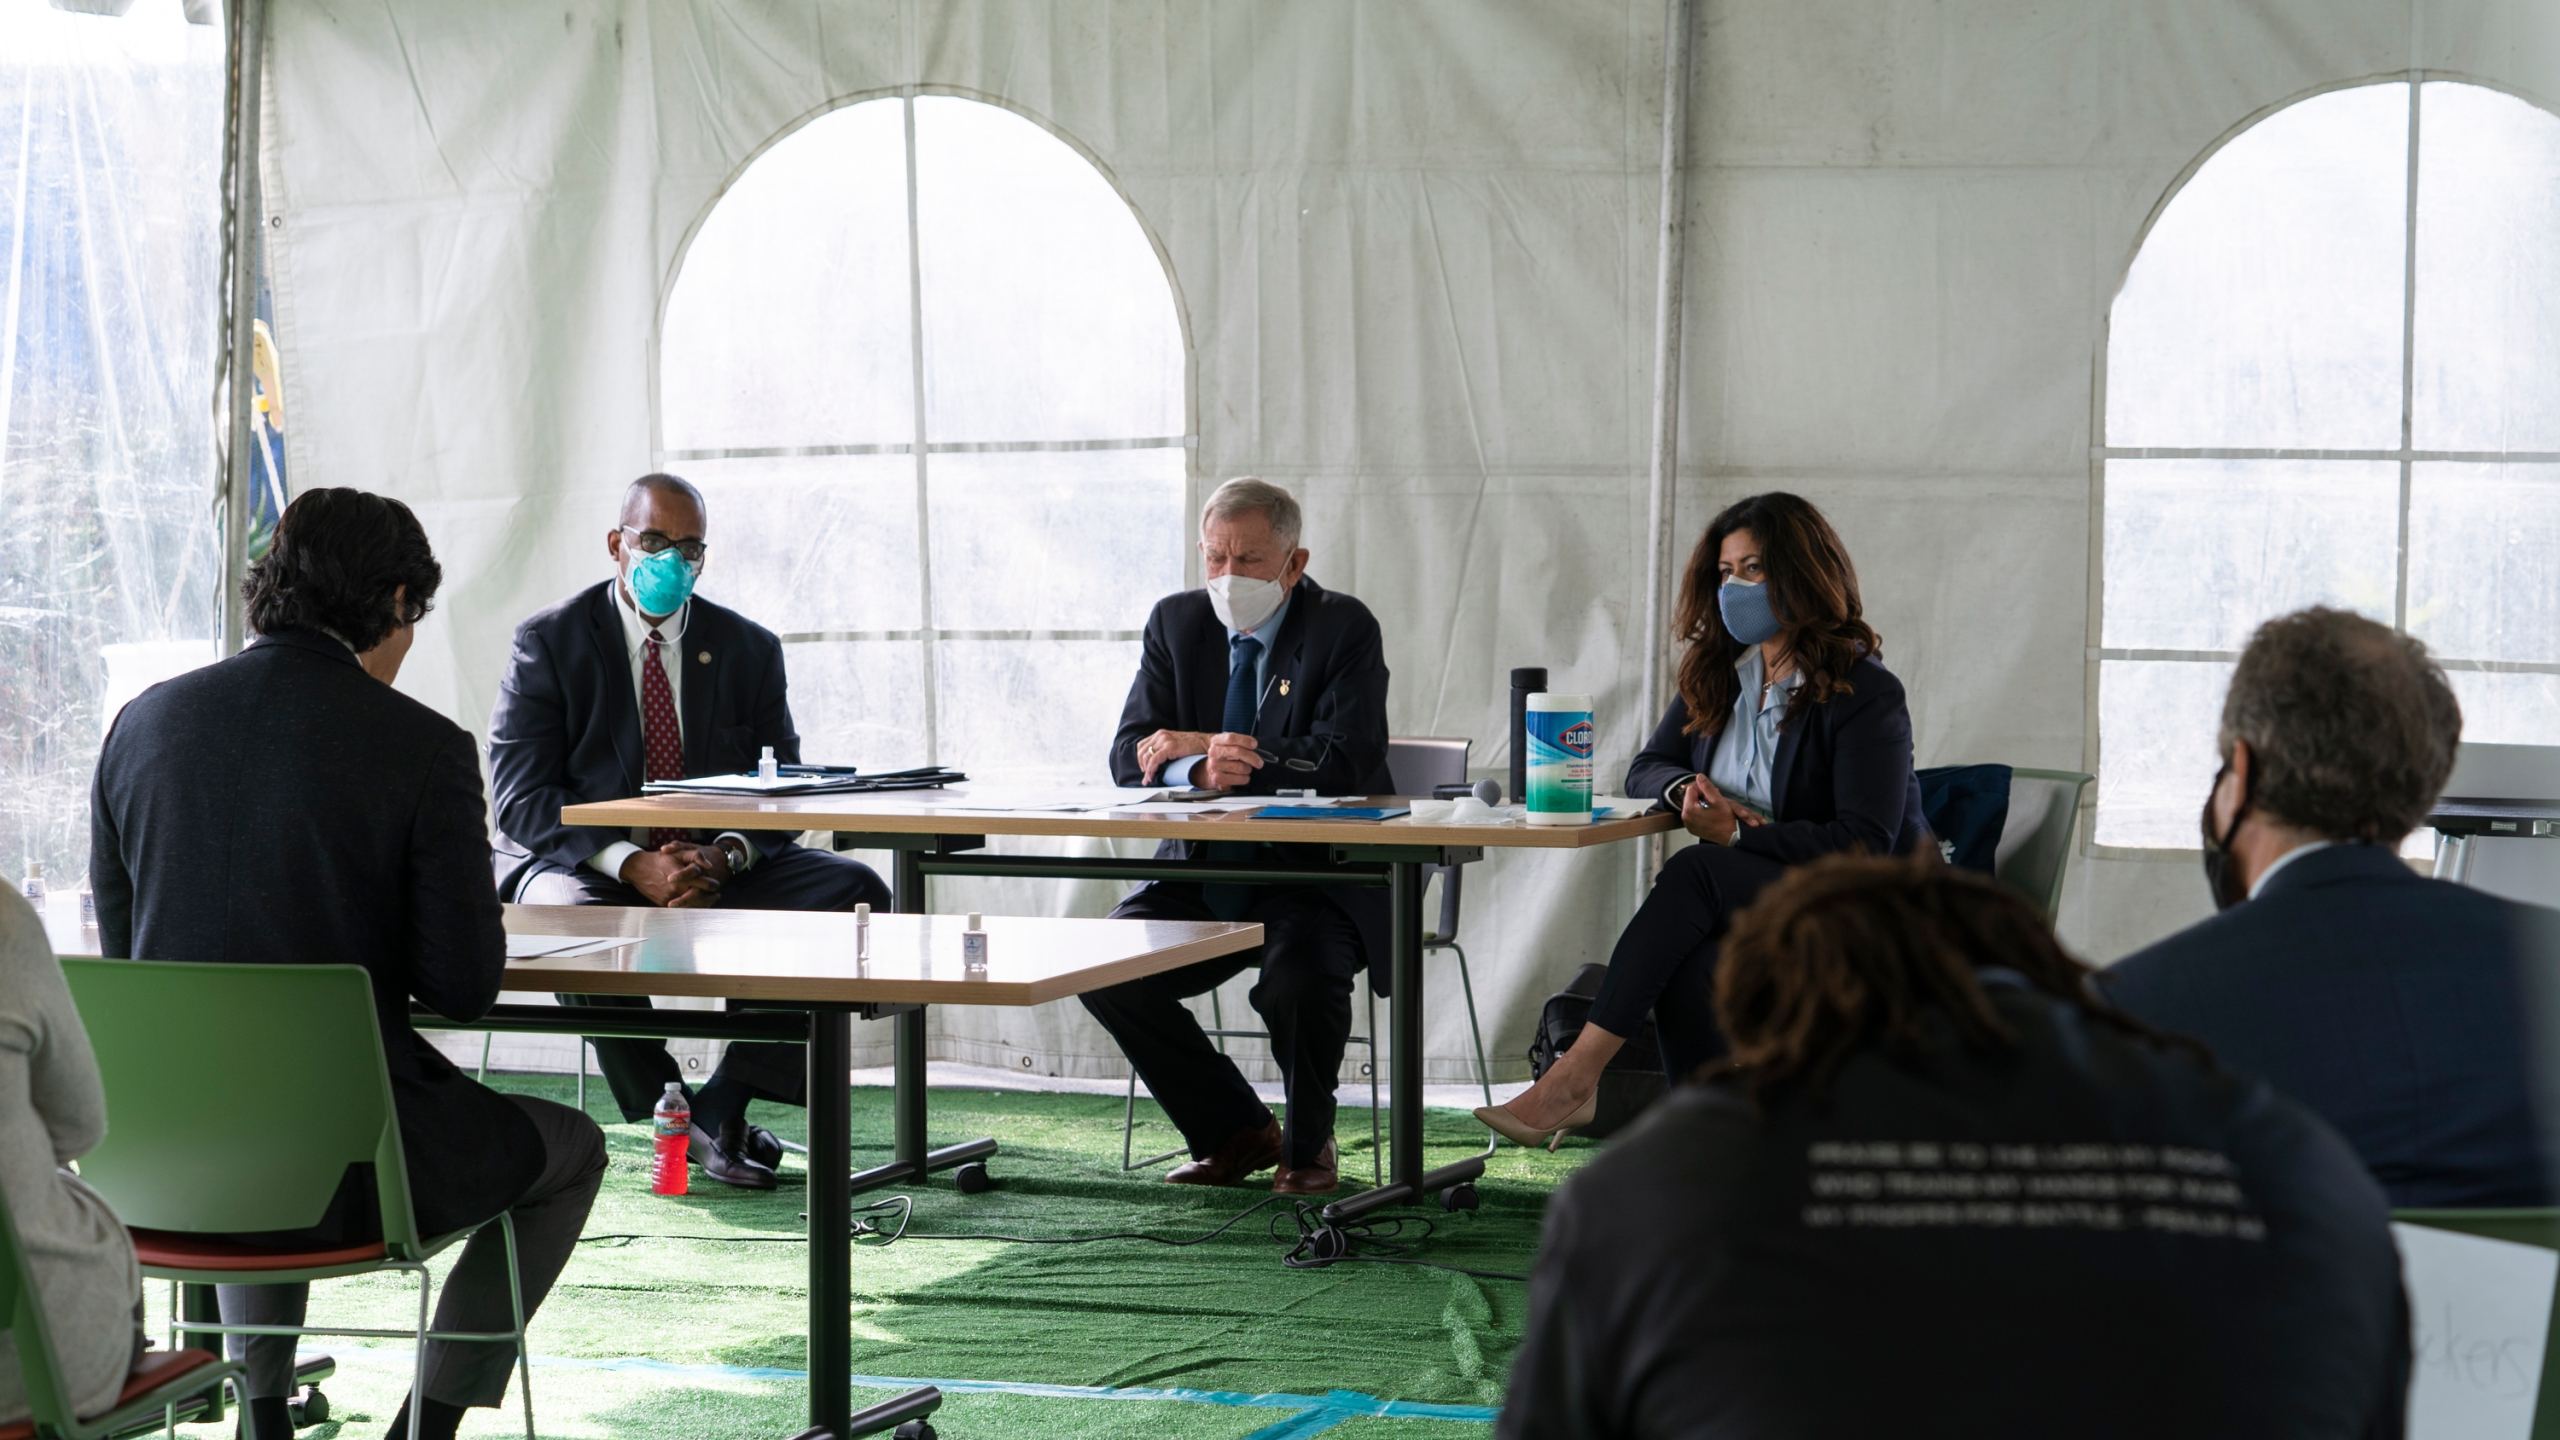 Los Angeles City Council member Kevin de Leon, far left, addresses U.S. District Judge Andre Birotte, second from left, U.S. District Court Judge David Carter, middle, and special master Michele Martinez, right, at a court hearing inside a tent at Downtown Women's Center in Los Angeles on Feb. 4, 2021. (AP Photo/Damian Dovarganes)